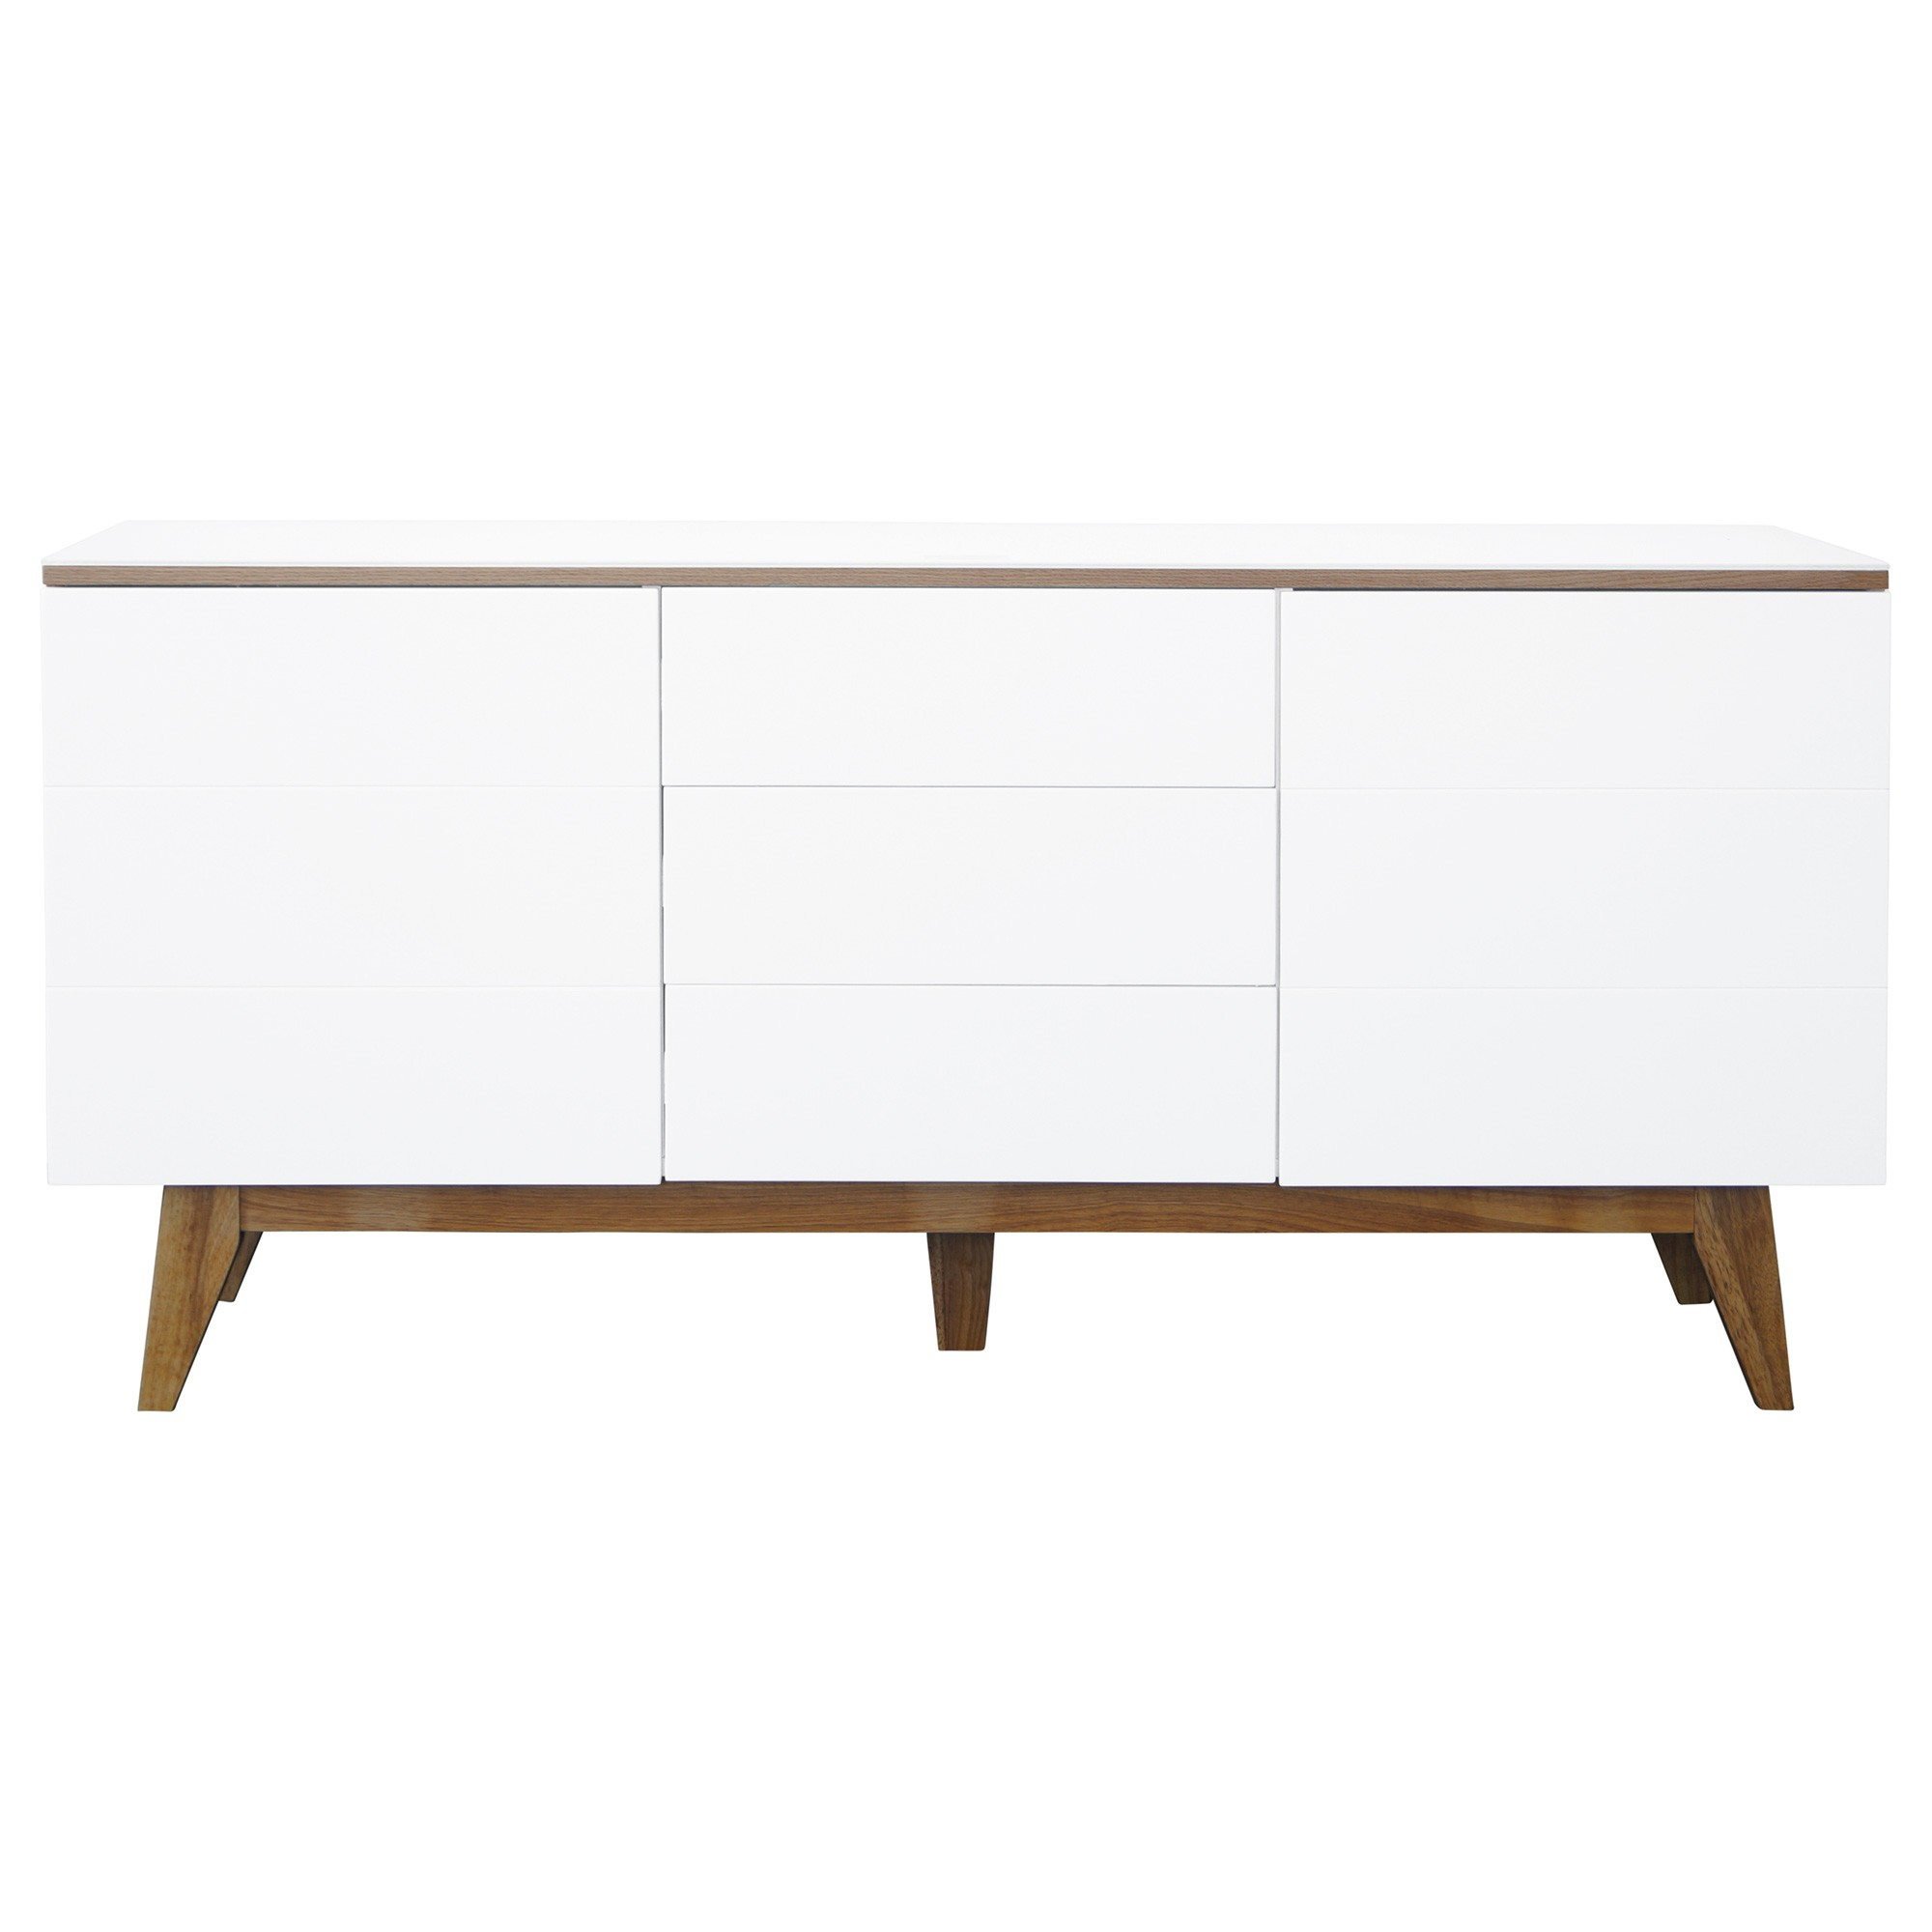 Marie Buffet 2 Door 3 Drawer Buffet Table, 150cm